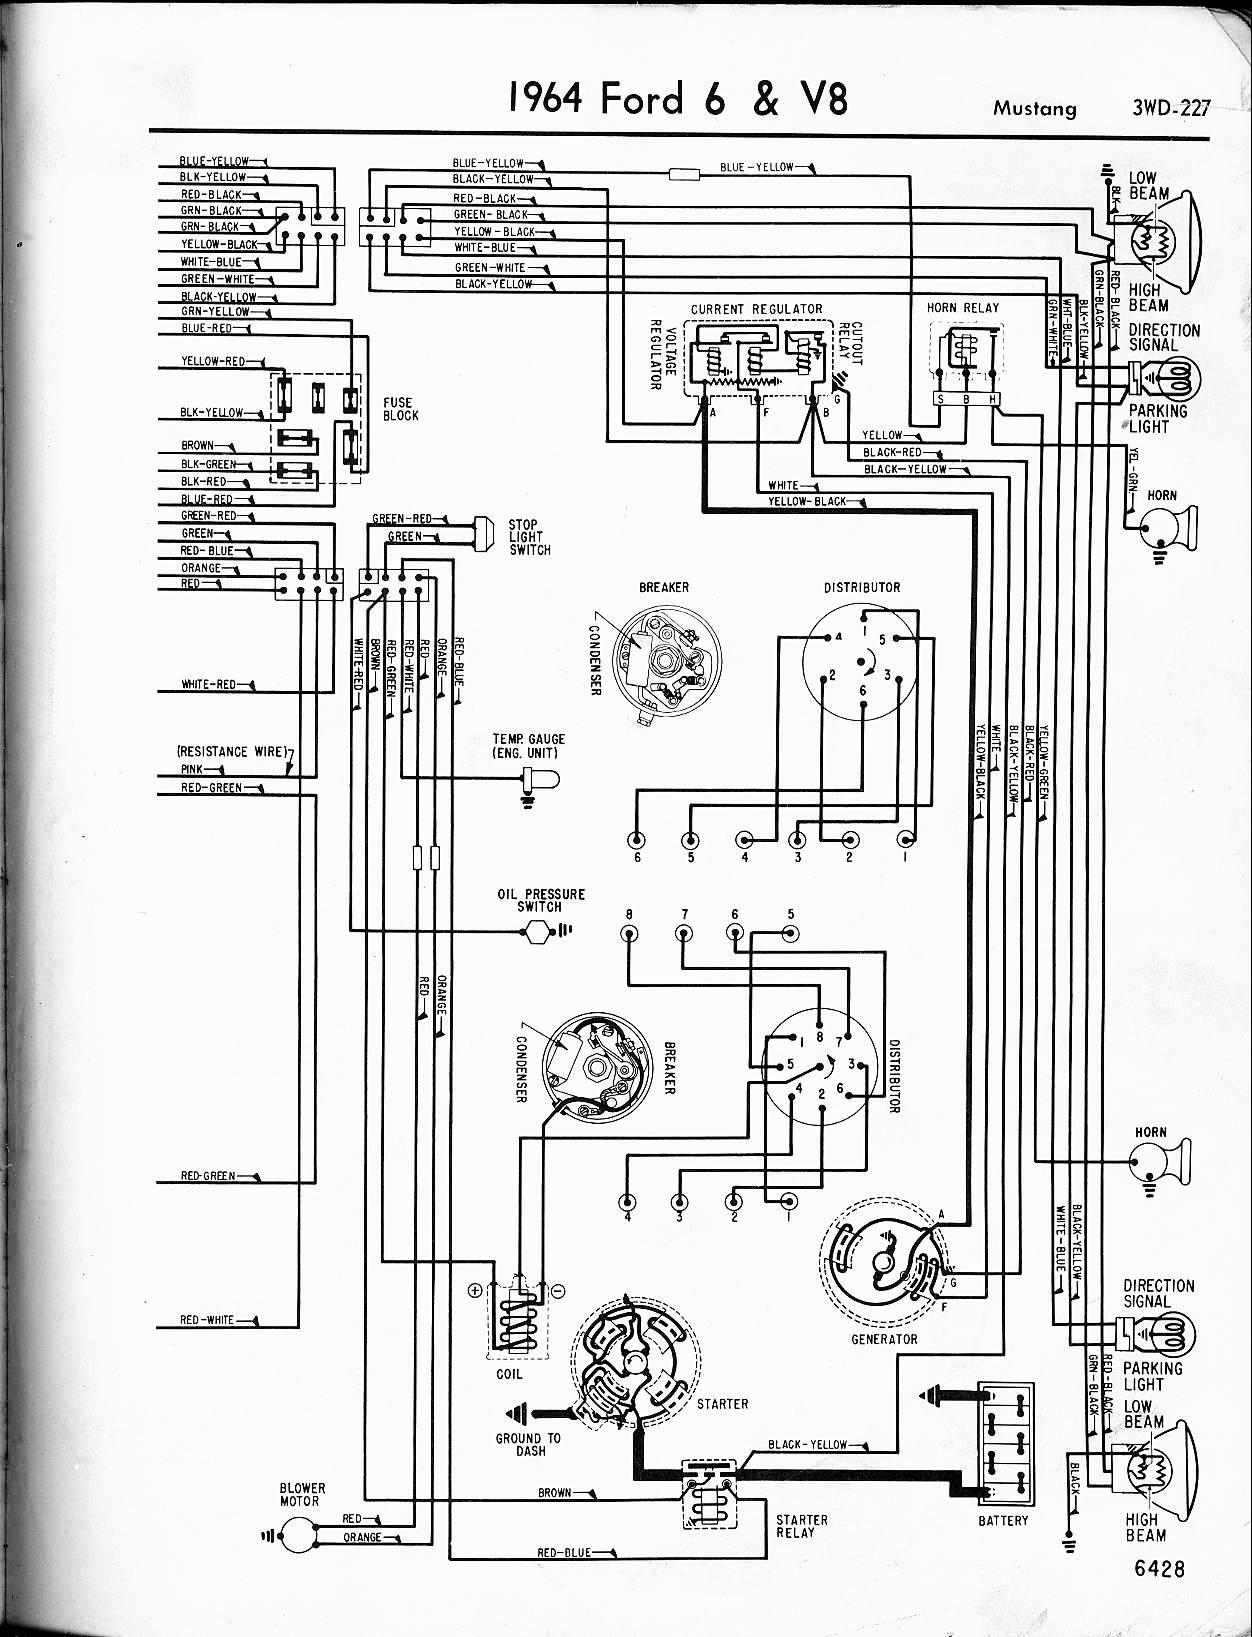 1965 ford f100 wiring diagram on wiring diagram for 1963 ford f100